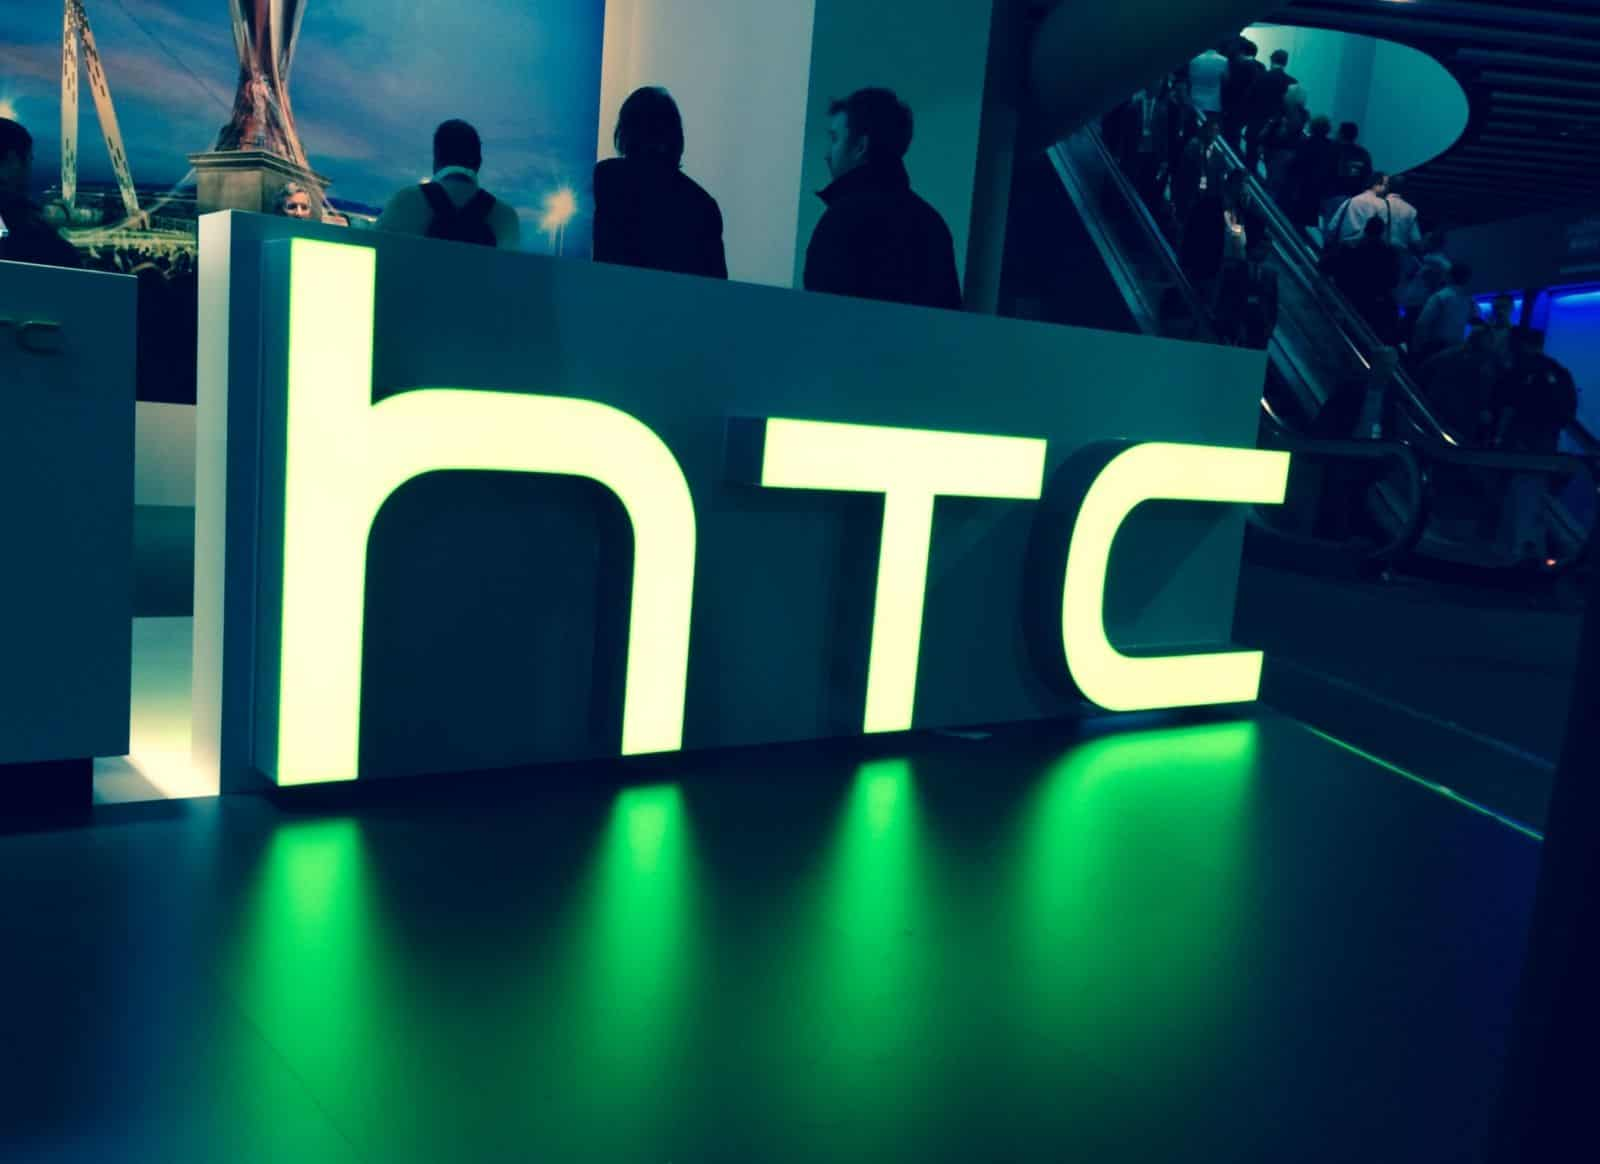 HTC: What Happened with the Smartwatch